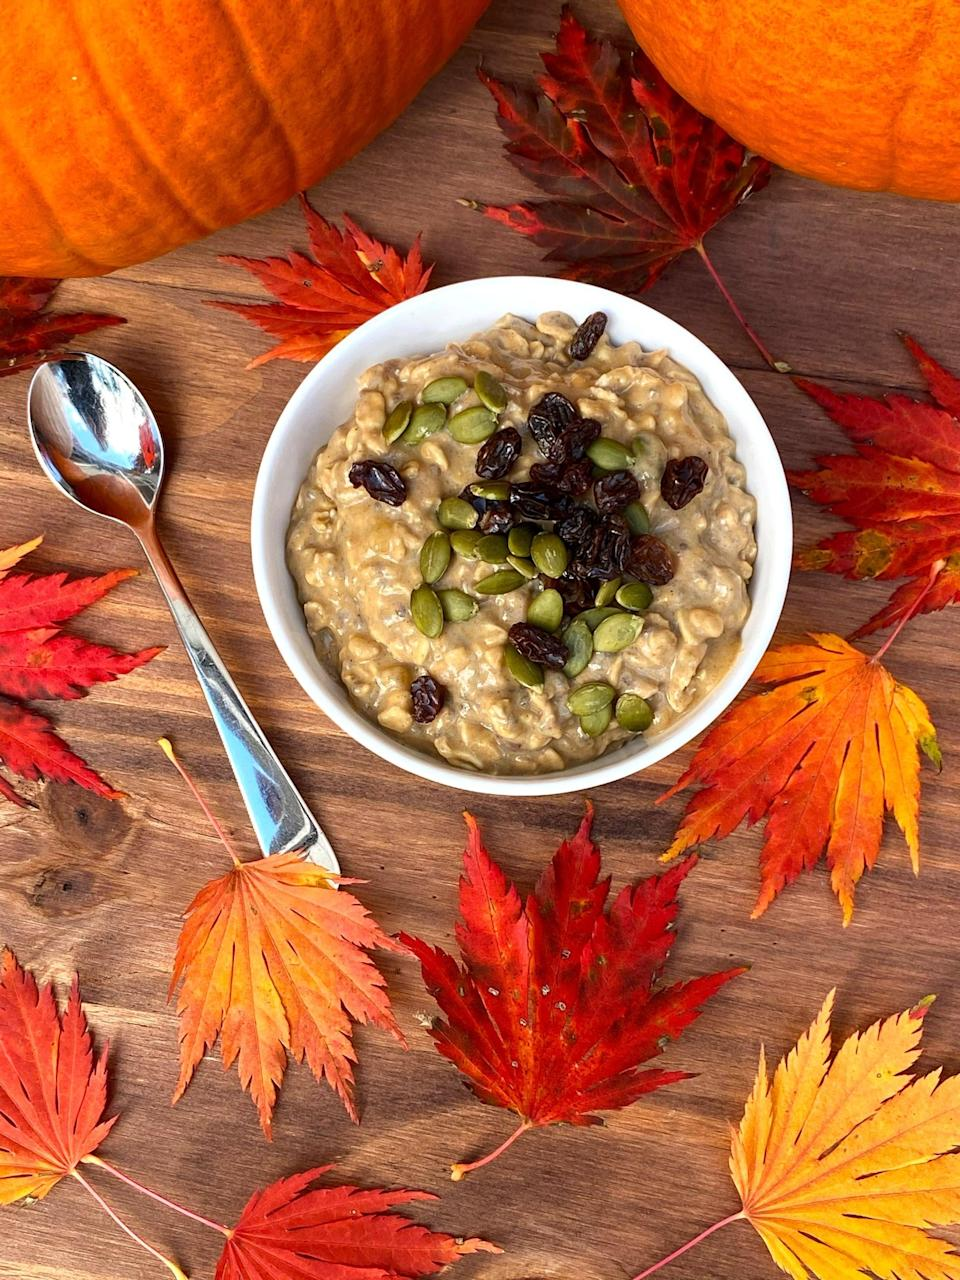 """<p>Wake up to the seasonal flavors of pumpkin pie with this exceptionally creamy and perfectly spiced overnight oats recipe. The best part is that you'll enjoy this breakfast for a week because this recipe makes five jars at once, saving you time and ensuring you have a healthy breakfast waiting for you every morning.</p> <p><strong>Get the recipe</strong>: <a href=""""https://www.popsugar.com/fitness/meal-prep-week-pumpkin-spice-overnight-oats-47886850"""" class=""""link rapid-noclick-resp"""" rel=""""nofollow noopener"""" target=""""_blank"""" data-ylk=""""slk:pumpkin spice overnight oats"""">pumpkin spice overnight oats</a></p>"""